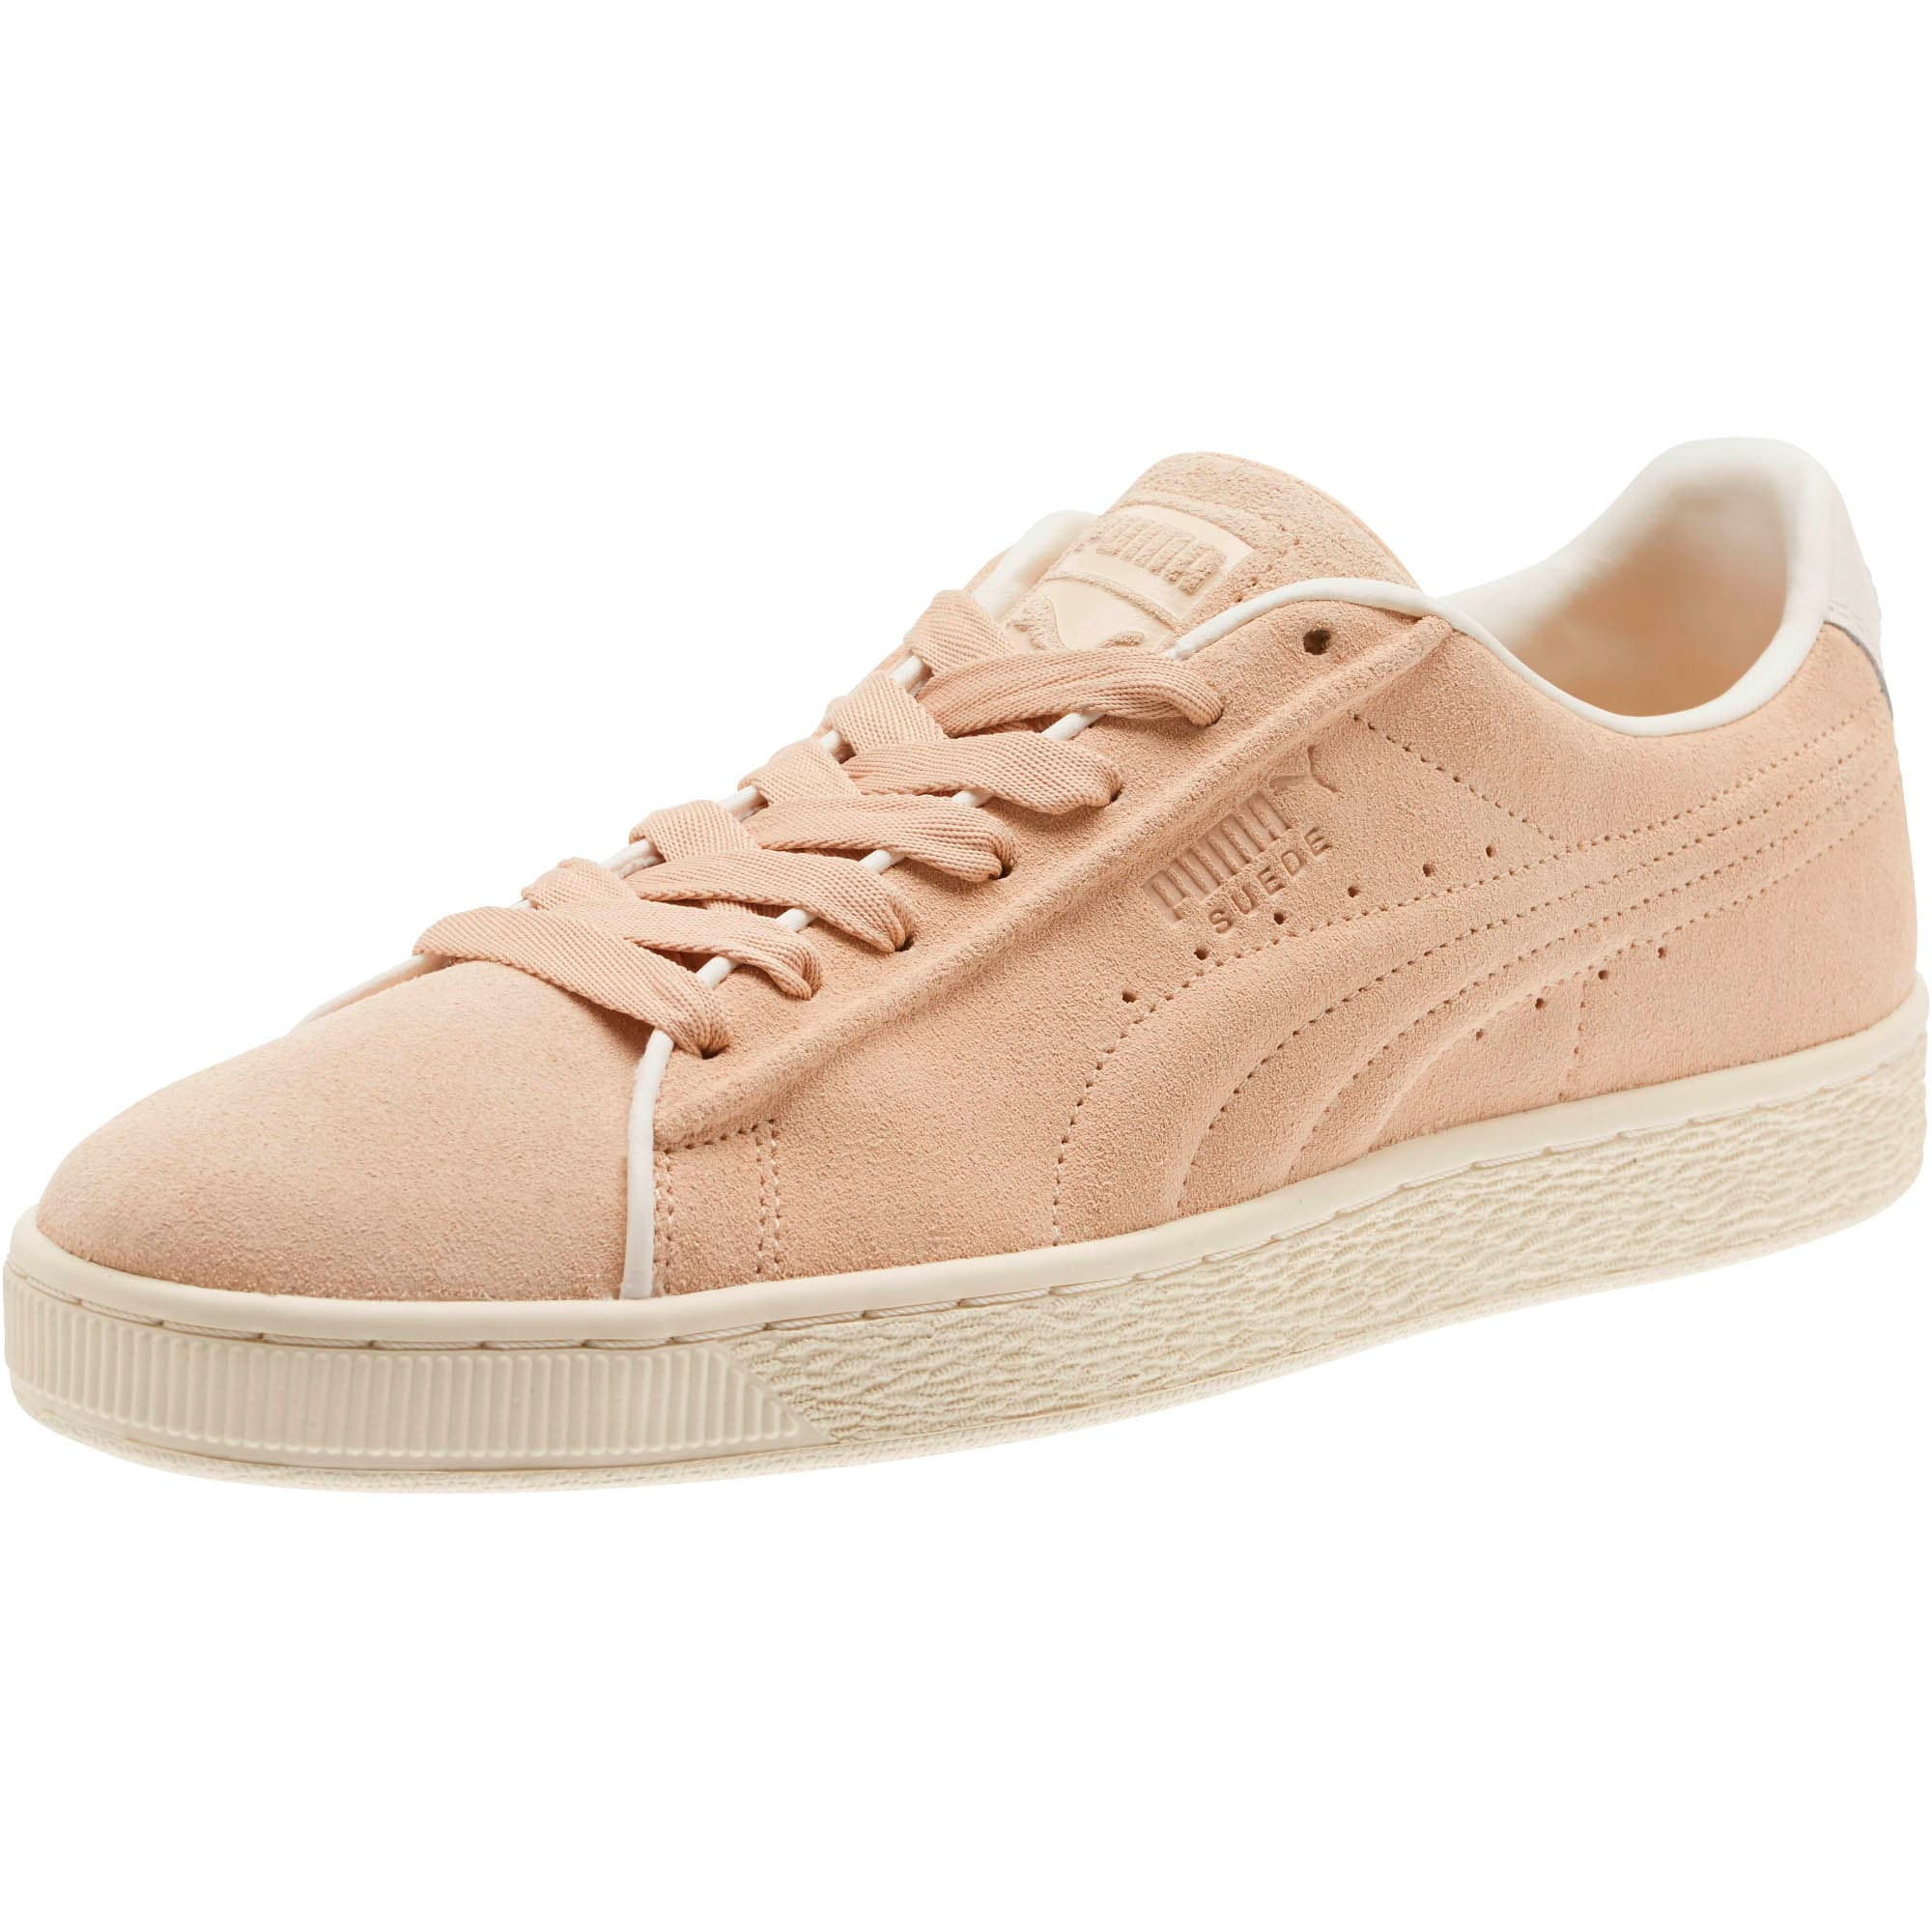 Thumbnail 1 of Suede Classic Raised Formstrip Sneakers, Natural Vachetta-Whisper w, medium